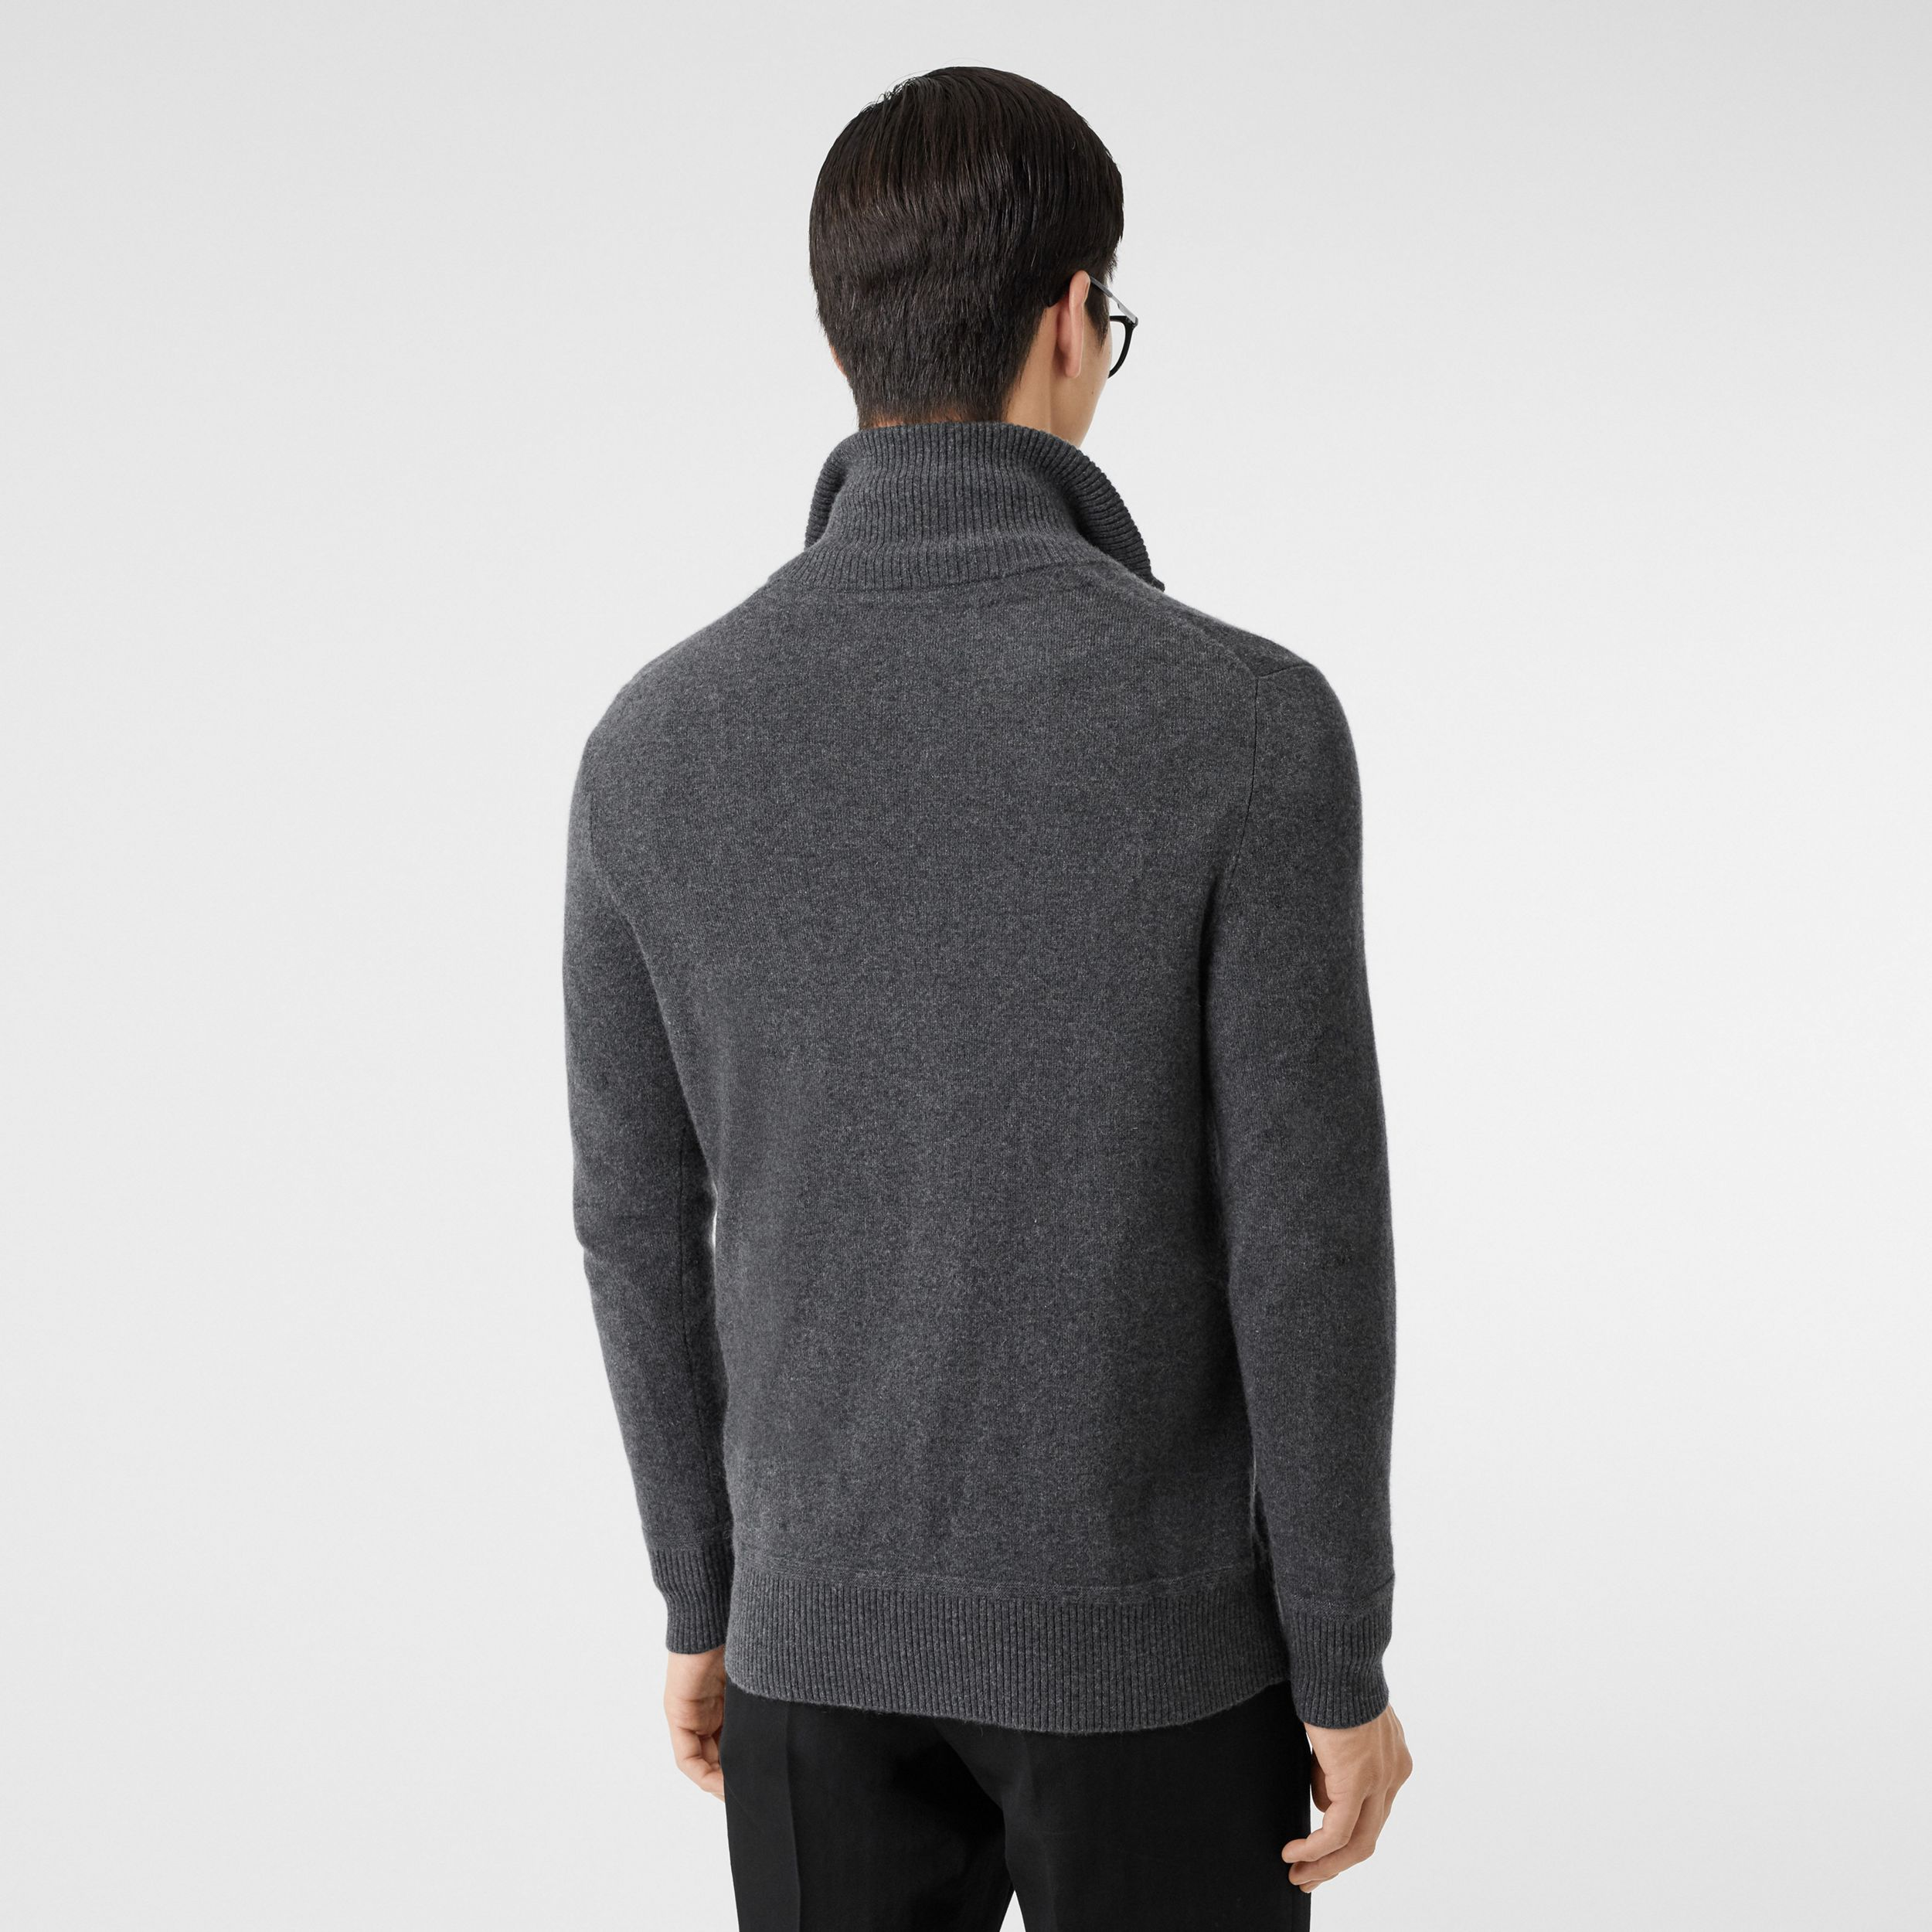 Monogram Motif Cashmere Funnel Neck Sweater in Steel Grey - Men | Burberry - 3